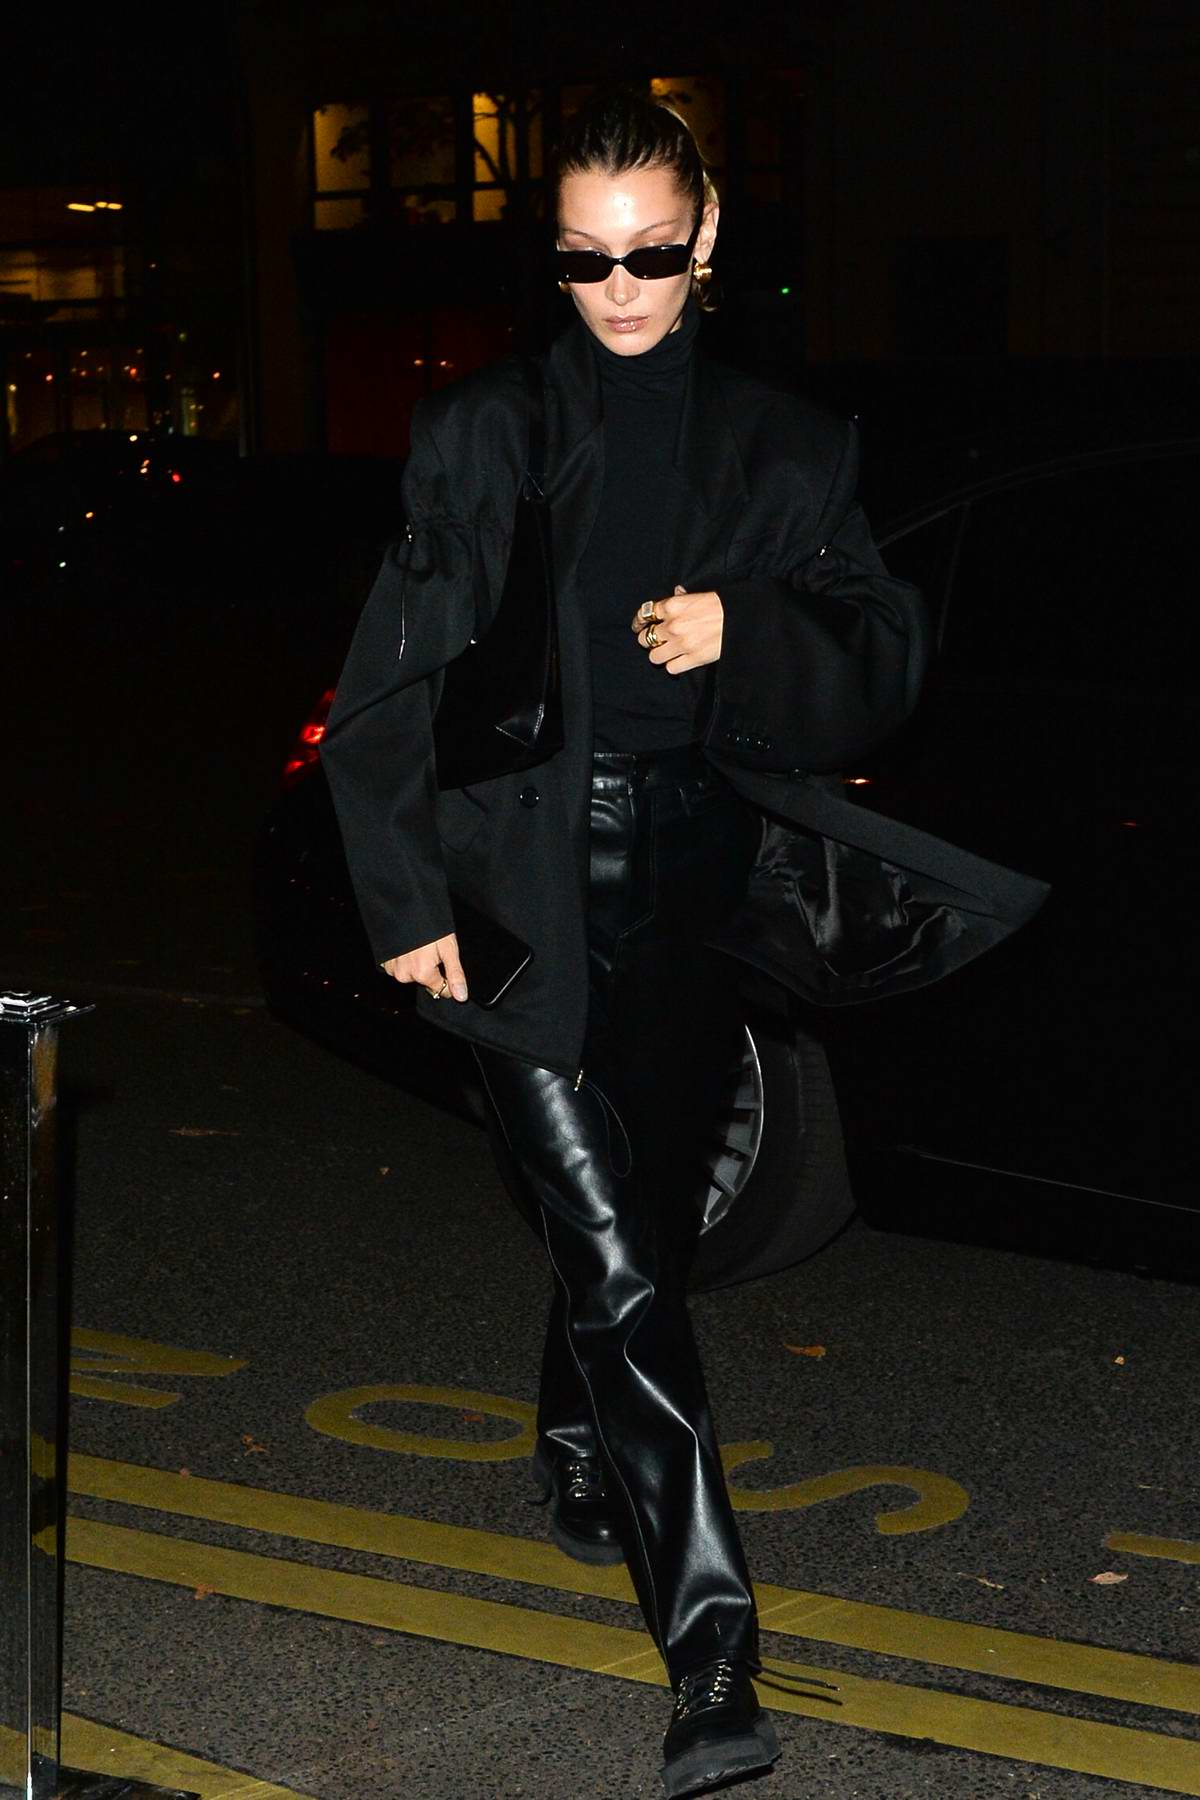 Bella Hadid steps out in all black ensemble in Paris, France